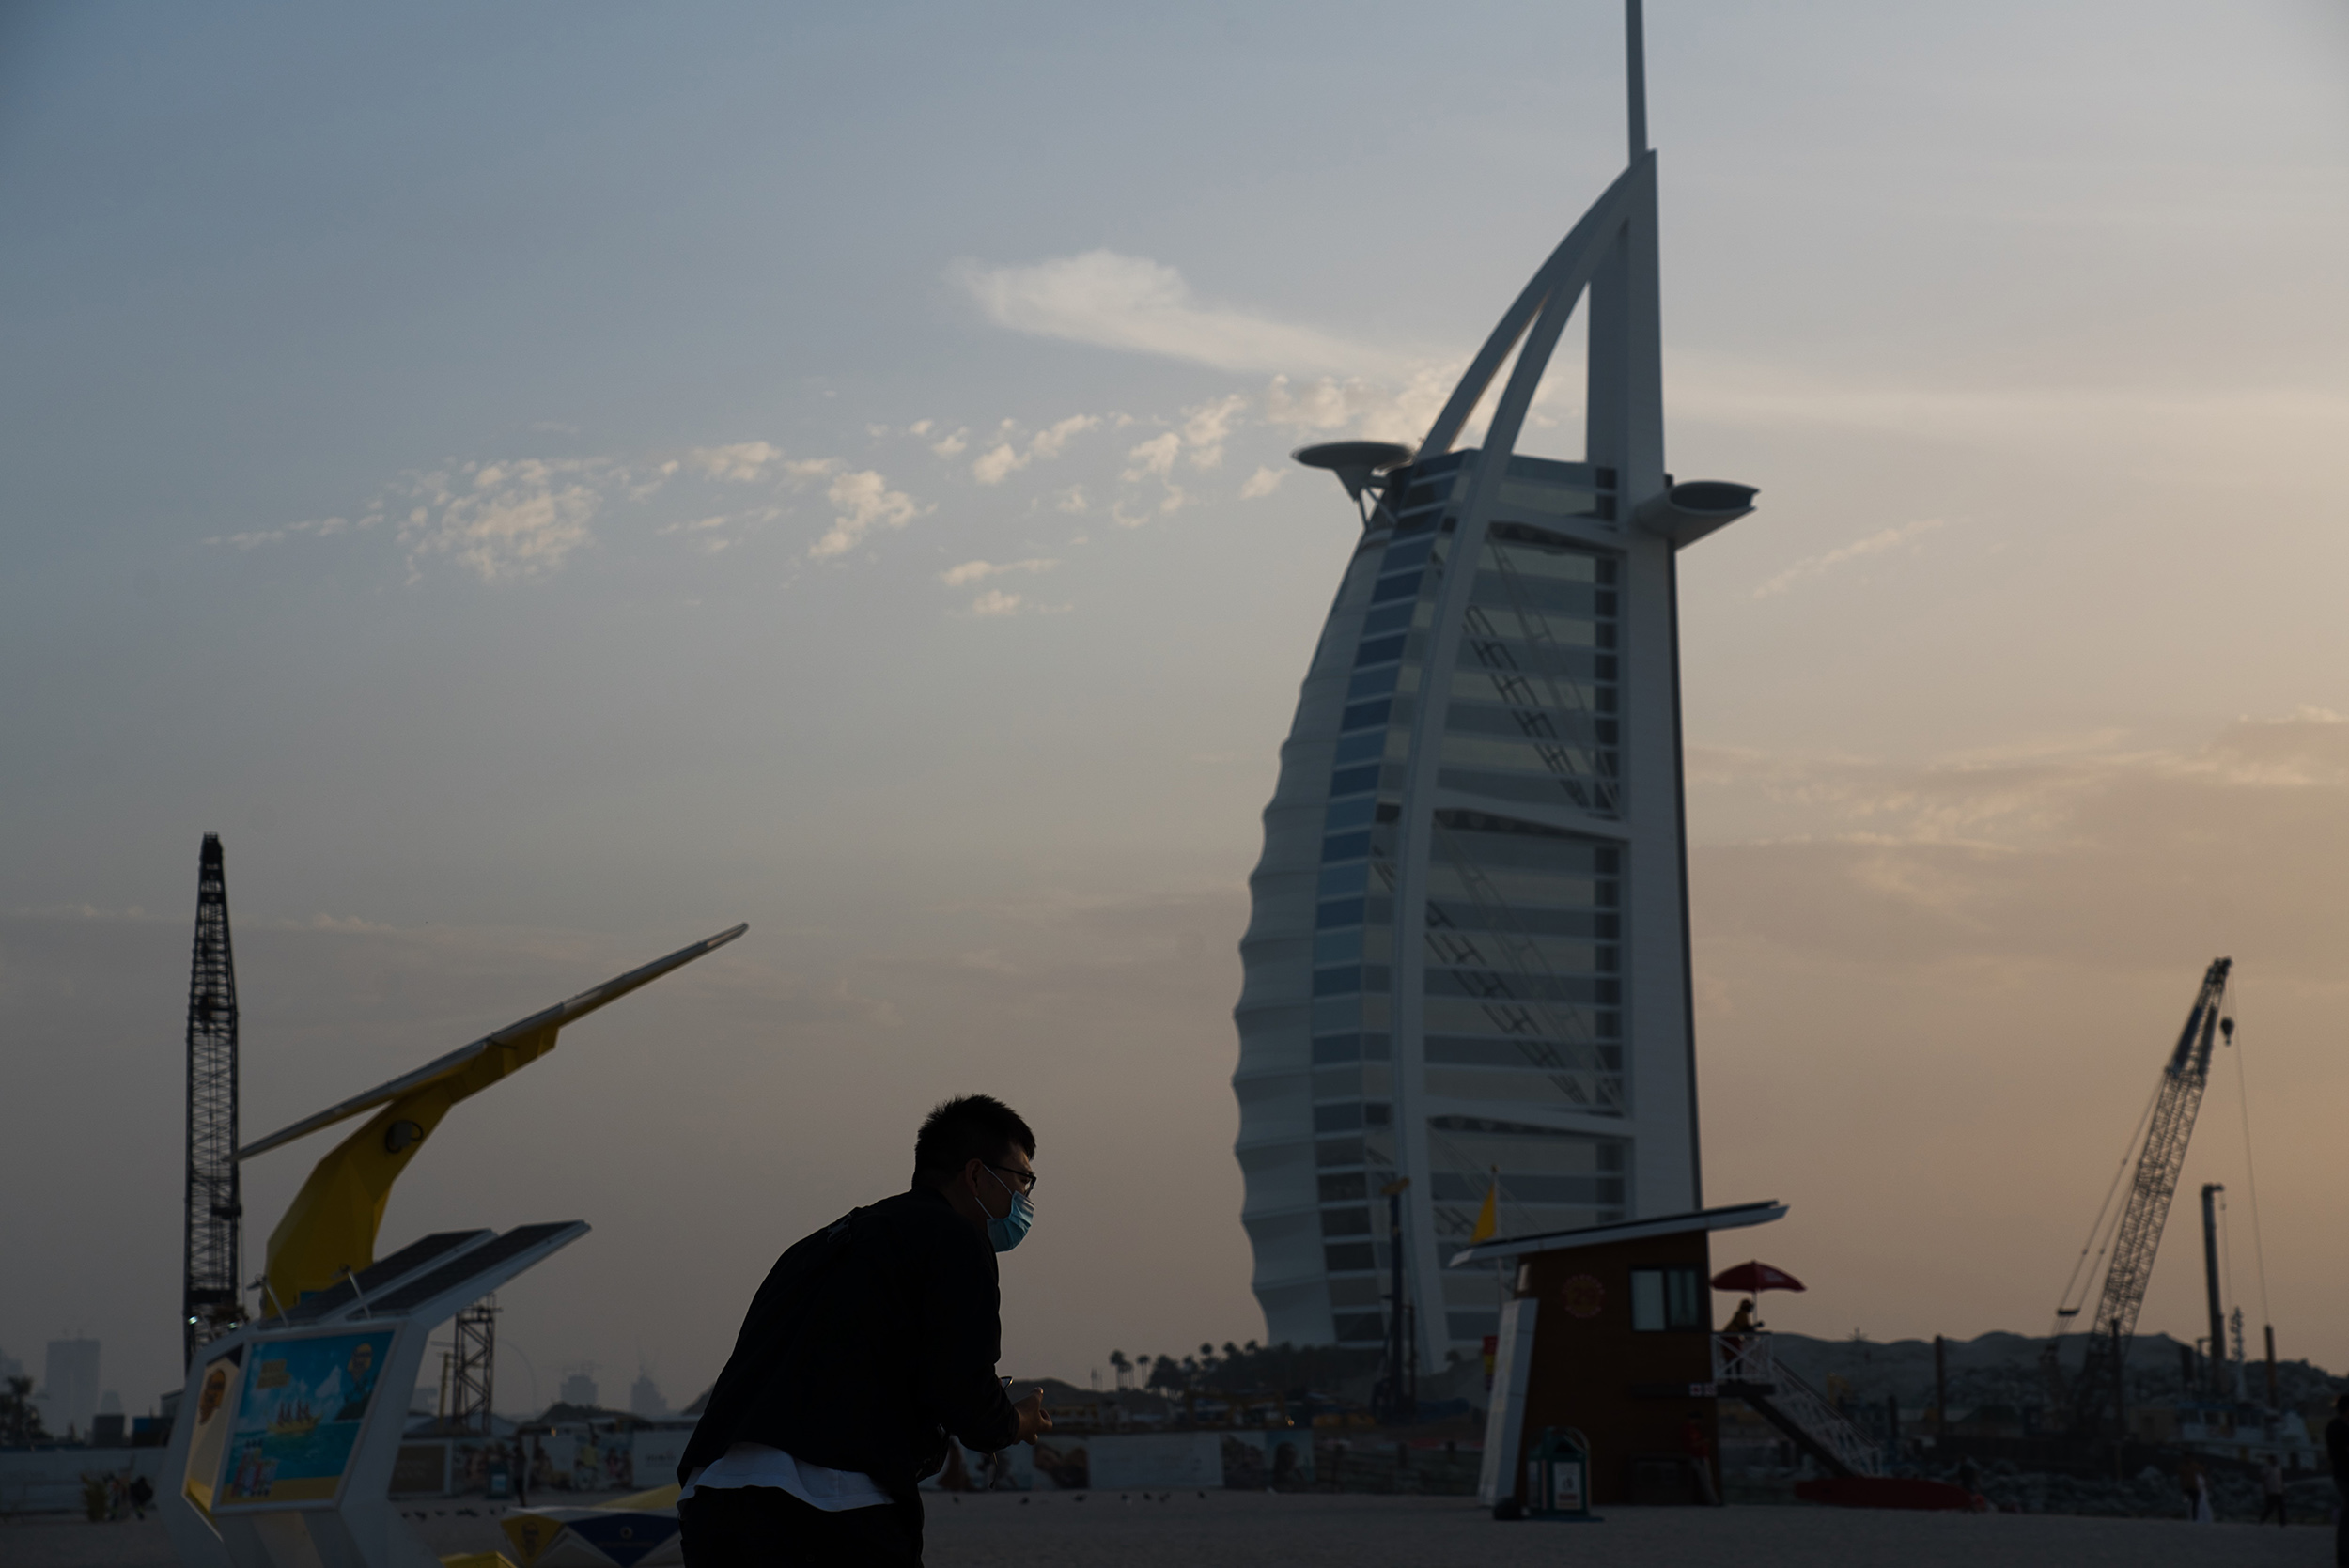 A tourist wearing a mask takes a picture in front of the sail-shaped Burj Al Arab luxury hotel in Dubai, United Arab Emirates, on Friday, March 20, 2020.